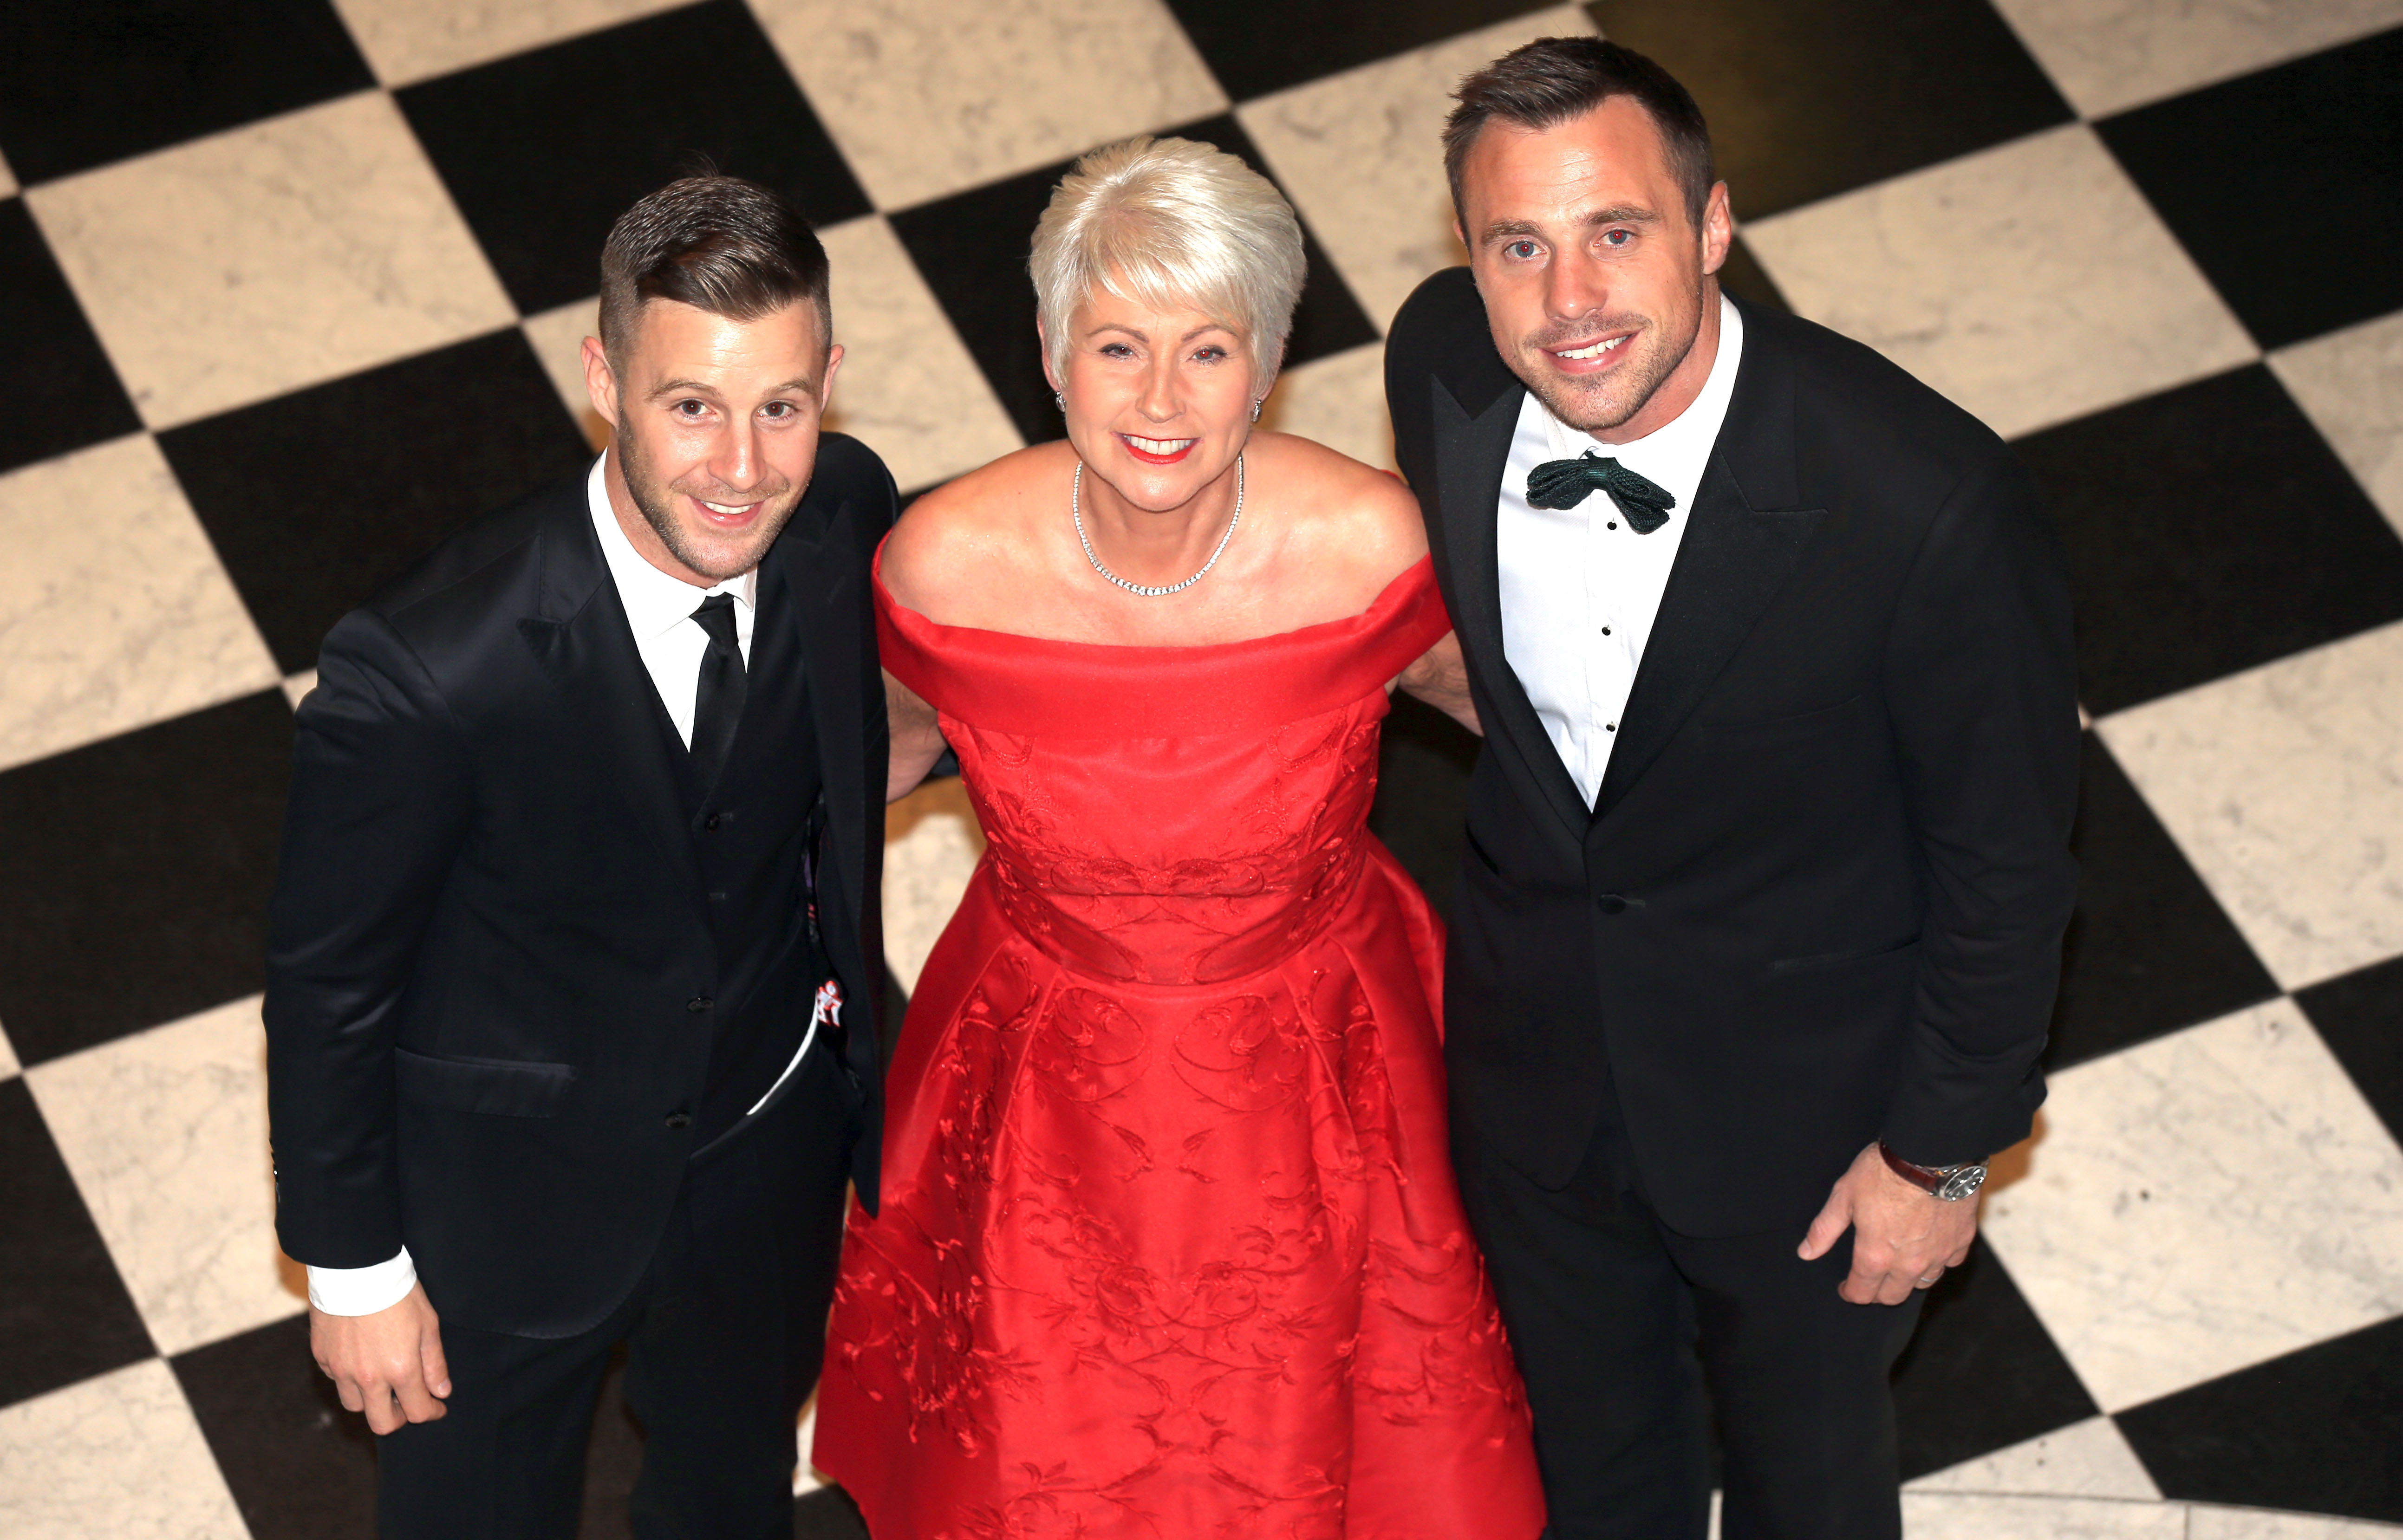 PACEMAKER, BELFAST, 6/9/2018: Television presenter Pamela Ballantine was the winner of the Celebrity of the Year award at the Ulster Tatler Awards at Belfast City Hall. Pamela is pictured with World Superbike champion, Jonathan Rea who won the Sportsperson of the Year award and Ulster and Ireland rugby player, Tommy Bowe who received a Special Merit award for his services to sport. Northern IrelandÕs longest-running glossy magazine, Ulster Tatler, is celebrating over 50 years on the shelves of NI, and its eleventh annual awards recognise the people and businesses of Northern Ireland that have lit up its pages since 1966. PICTURE BY STEPHEN DAVISON